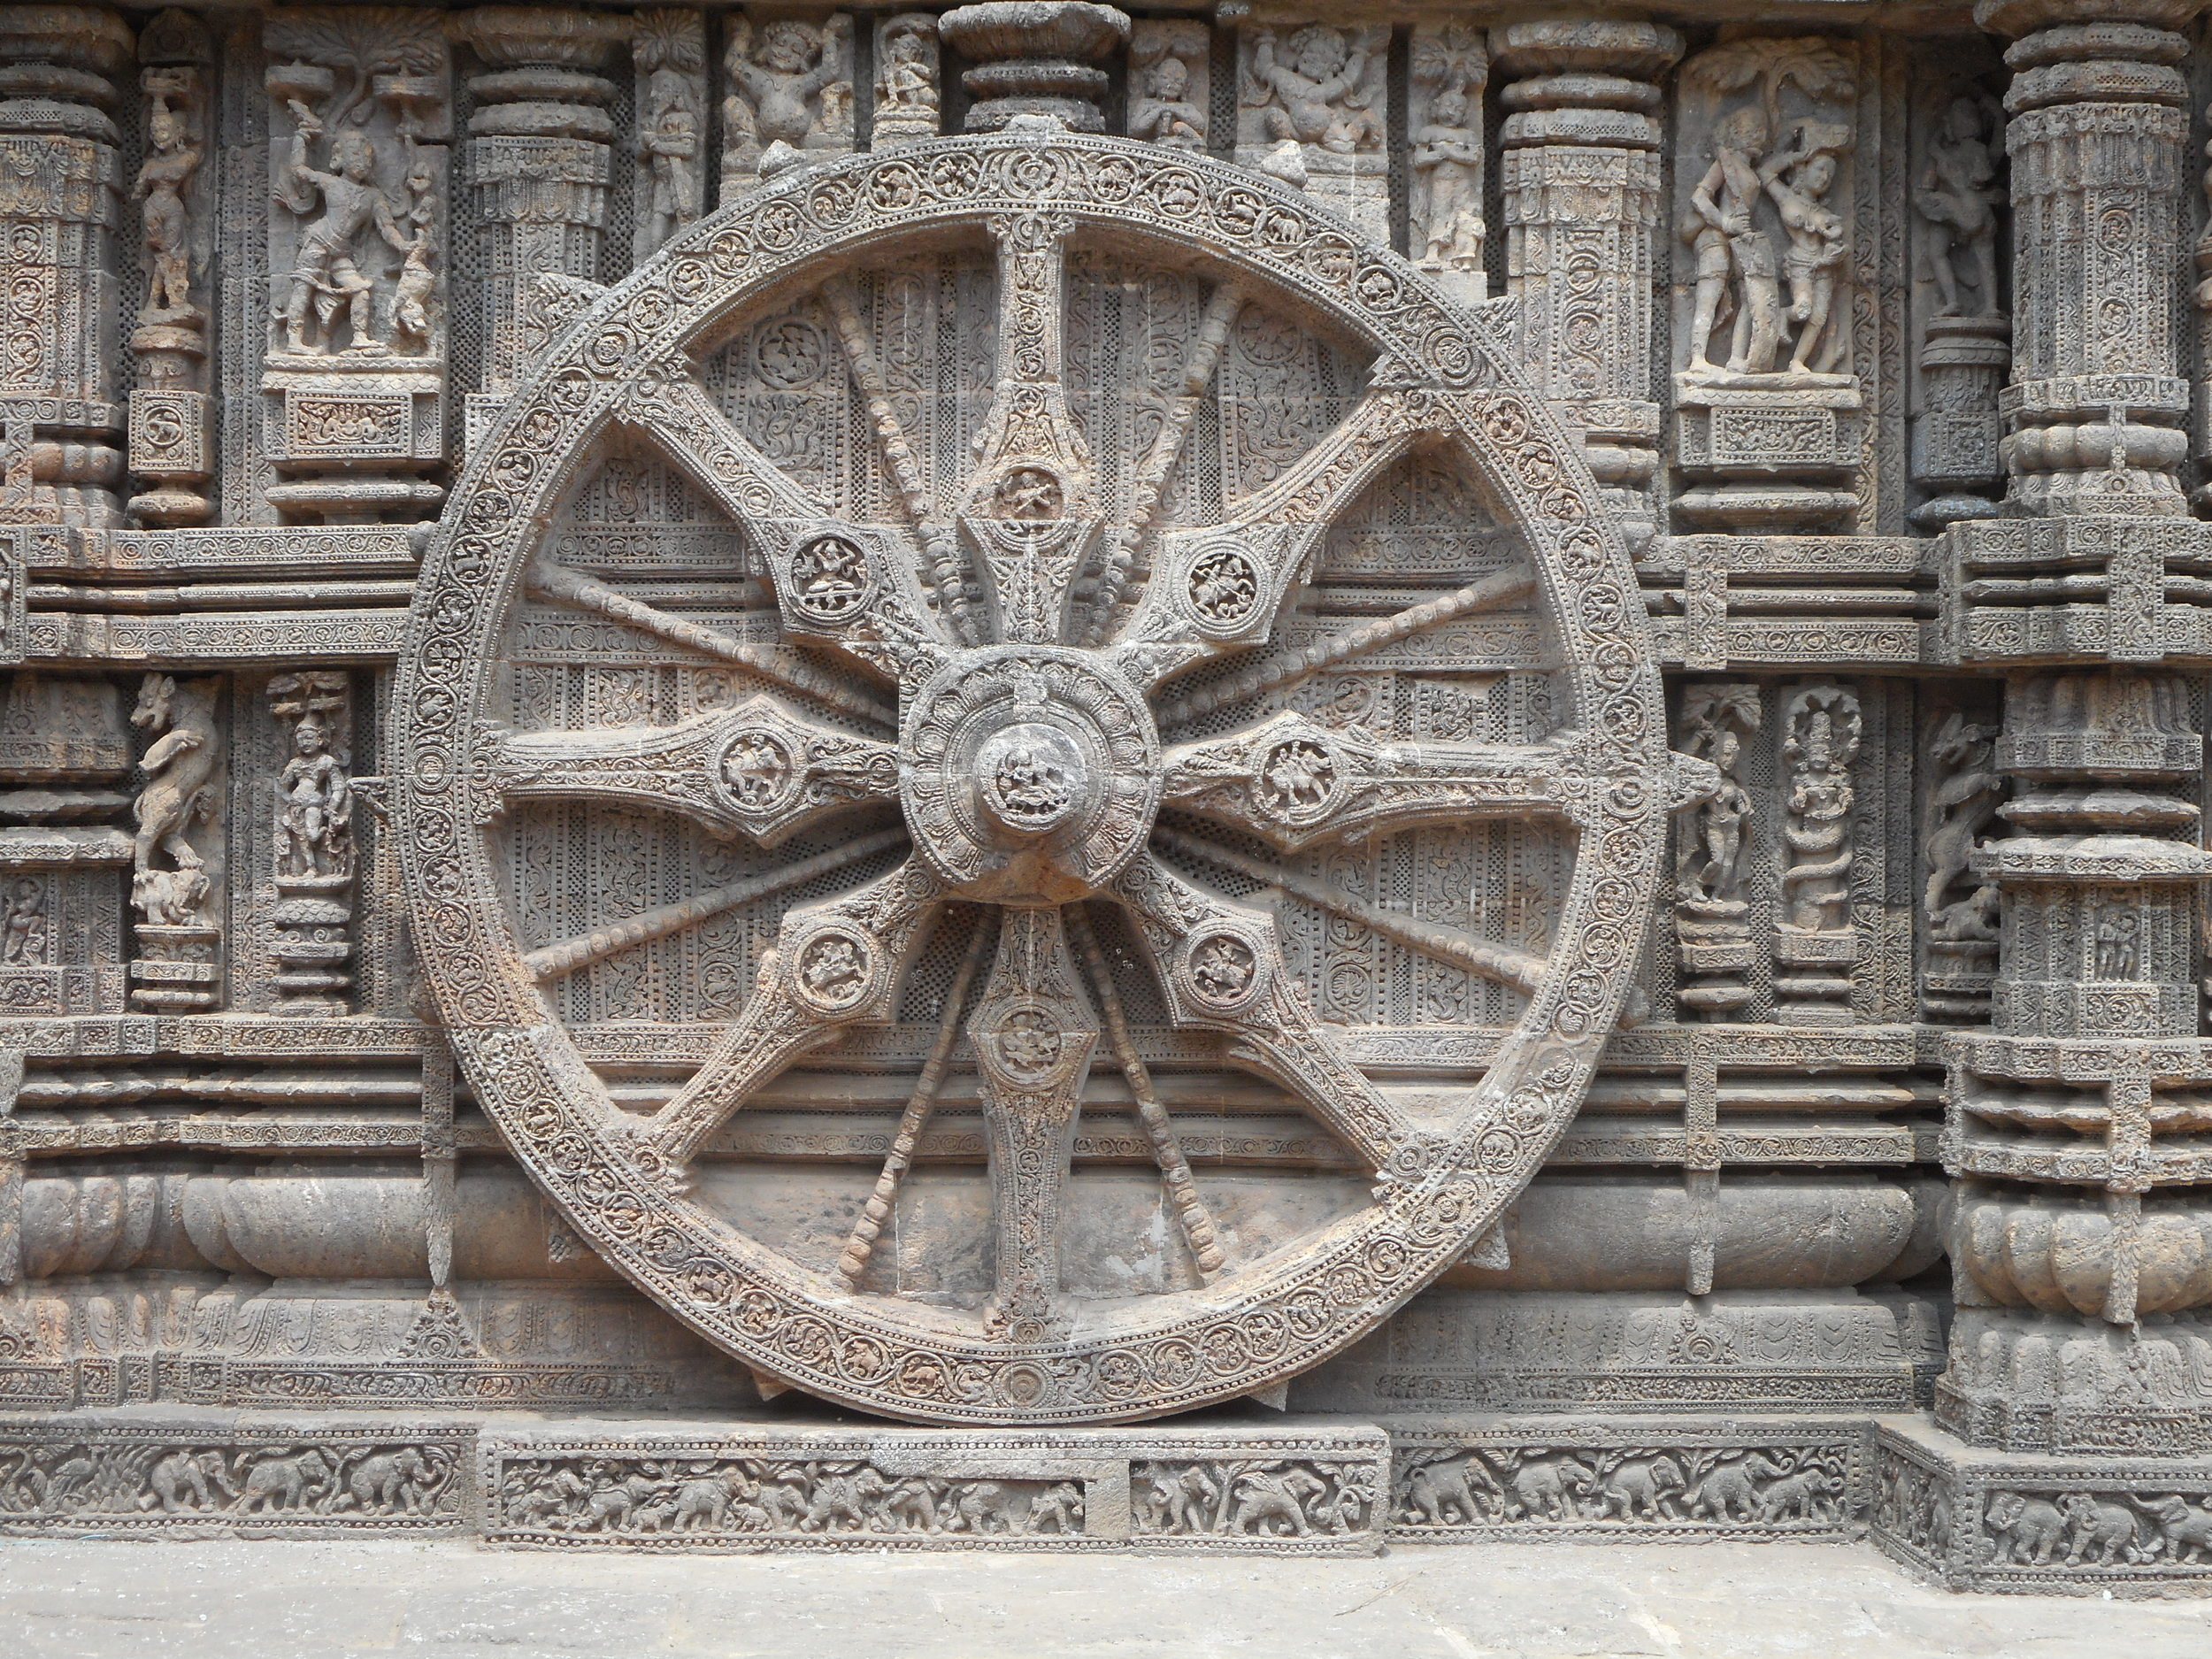 An intricately sculpted temple in Konark, India.